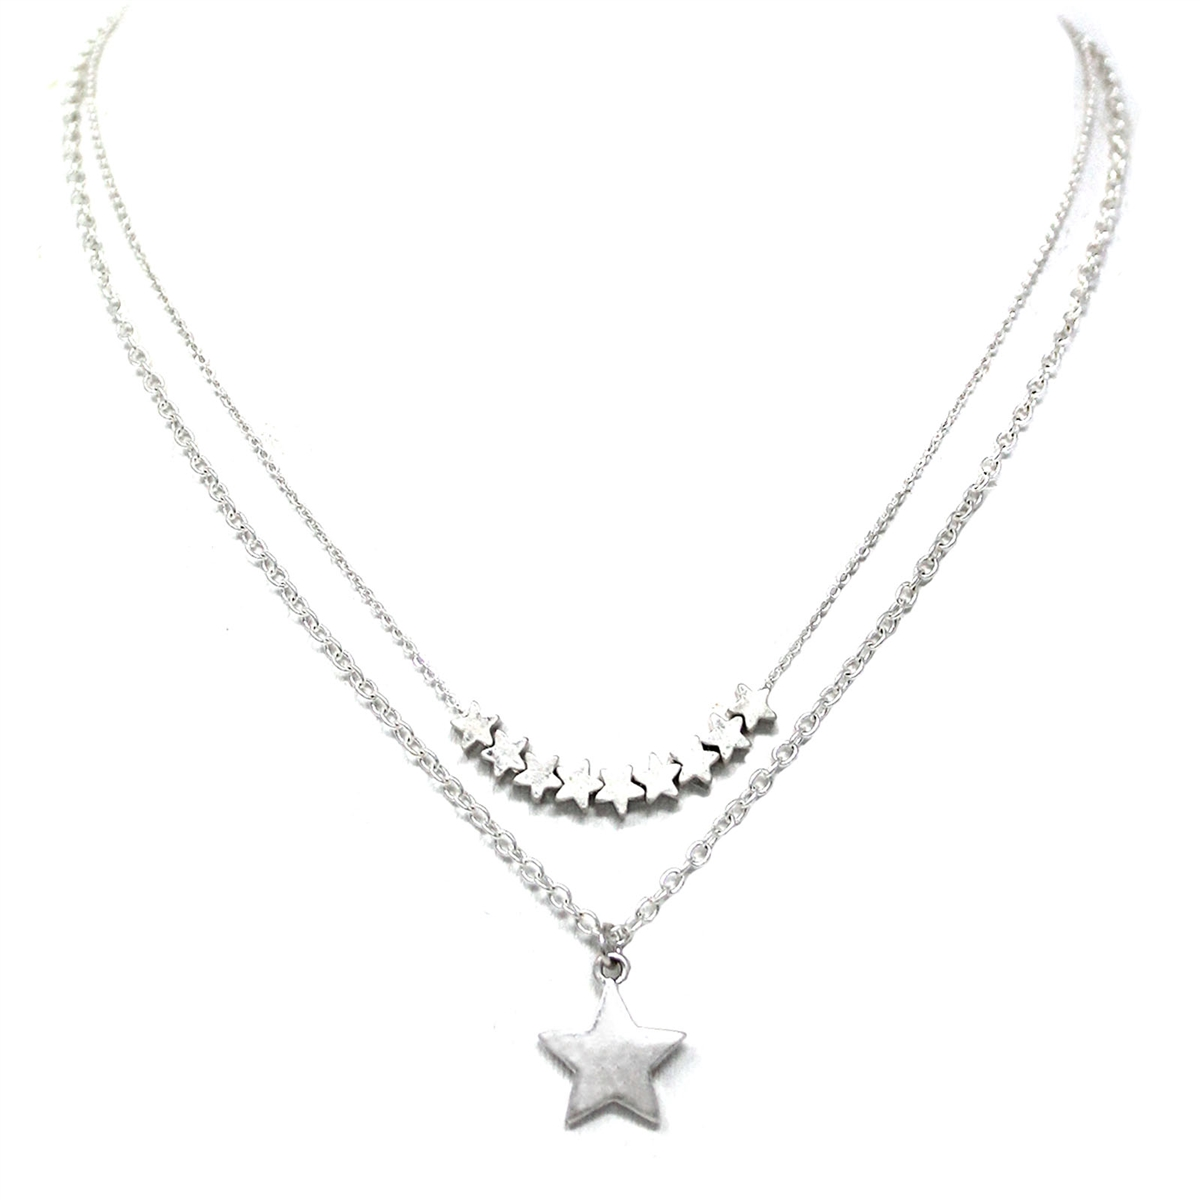 Silver Star Two Layer 16 18 Necklace